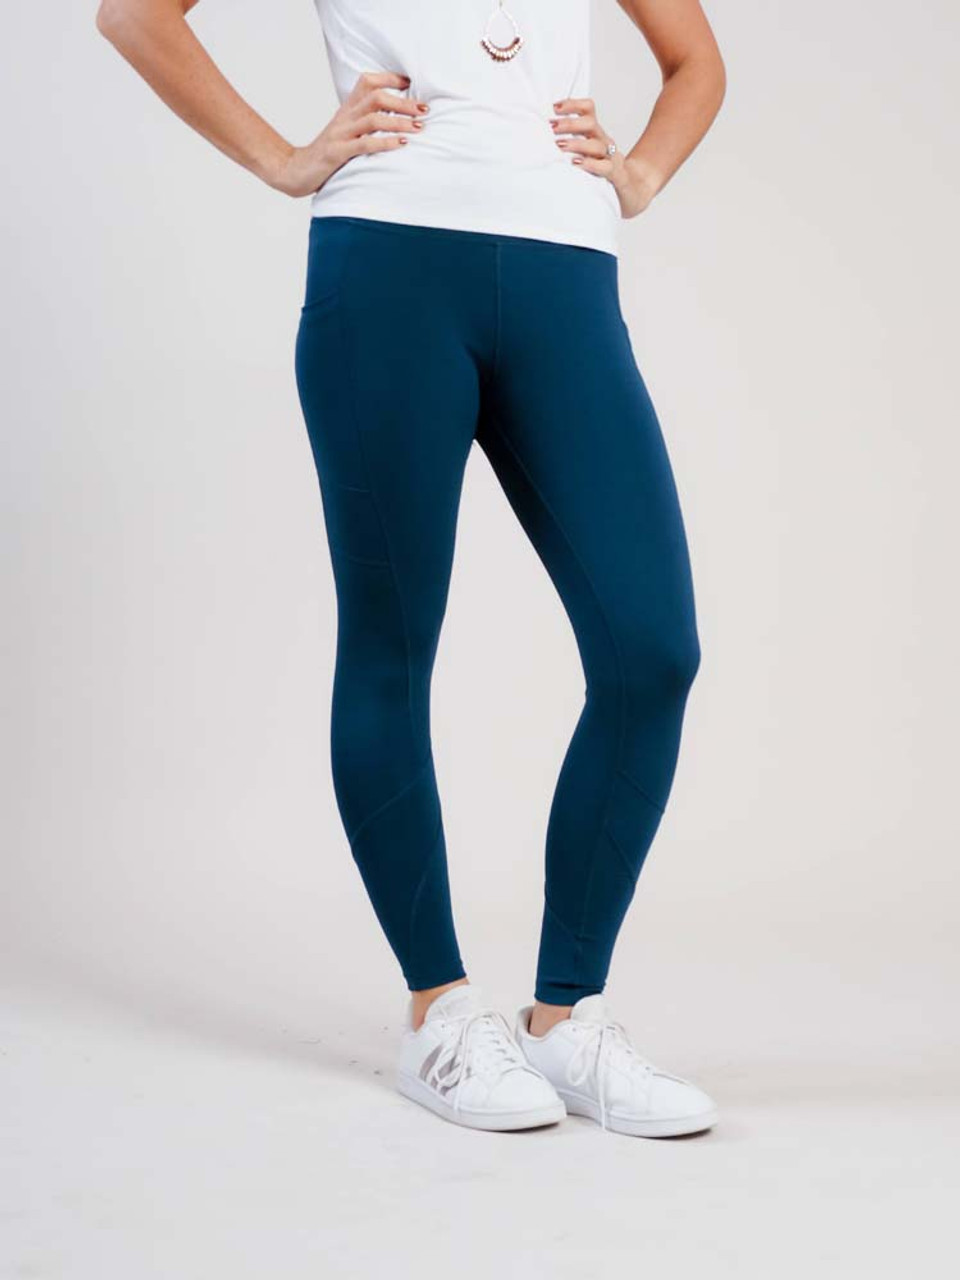 teal active lifestyle leggings